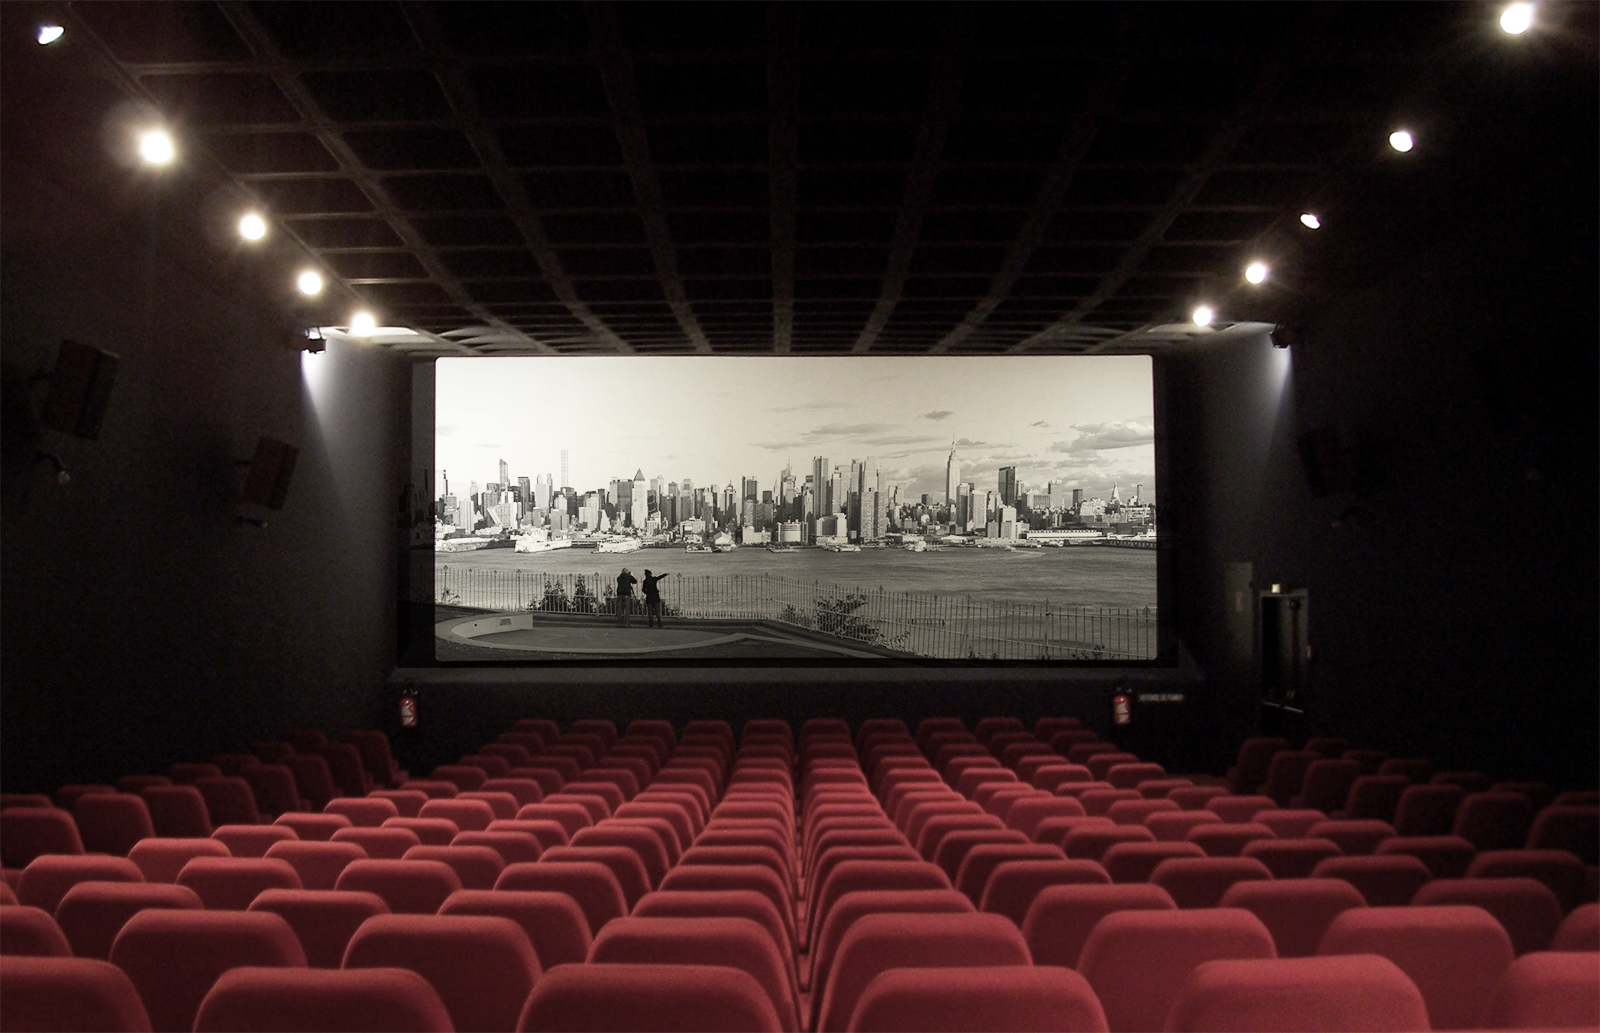 Full Hd Wallpaper For 5 Inch Screen How Architecture Speaks Through Cinema Archdaily